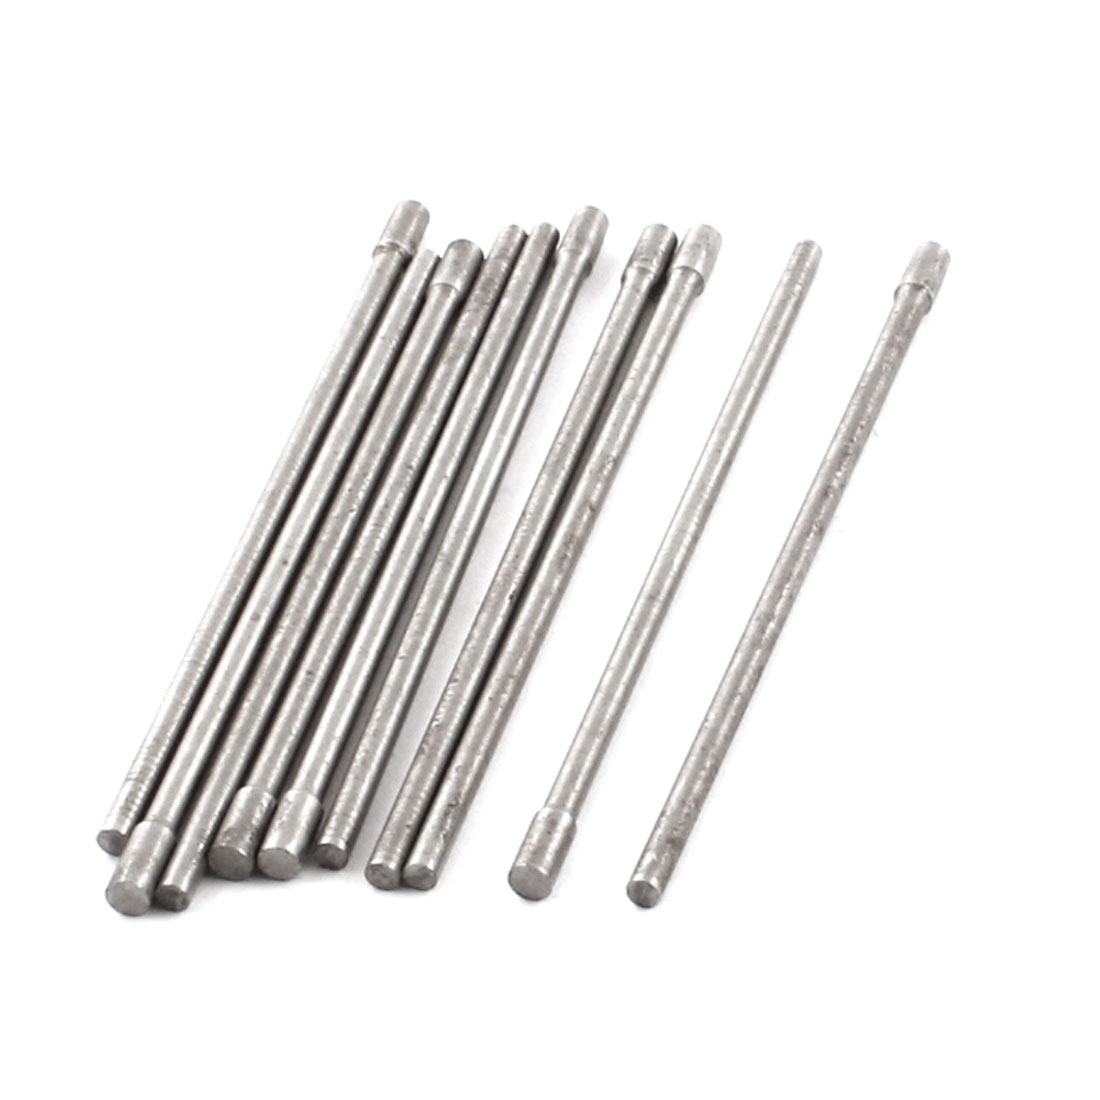 10pcs 2mm Tip Steel Straight Ejector Pin Punching Punches Silver Tone